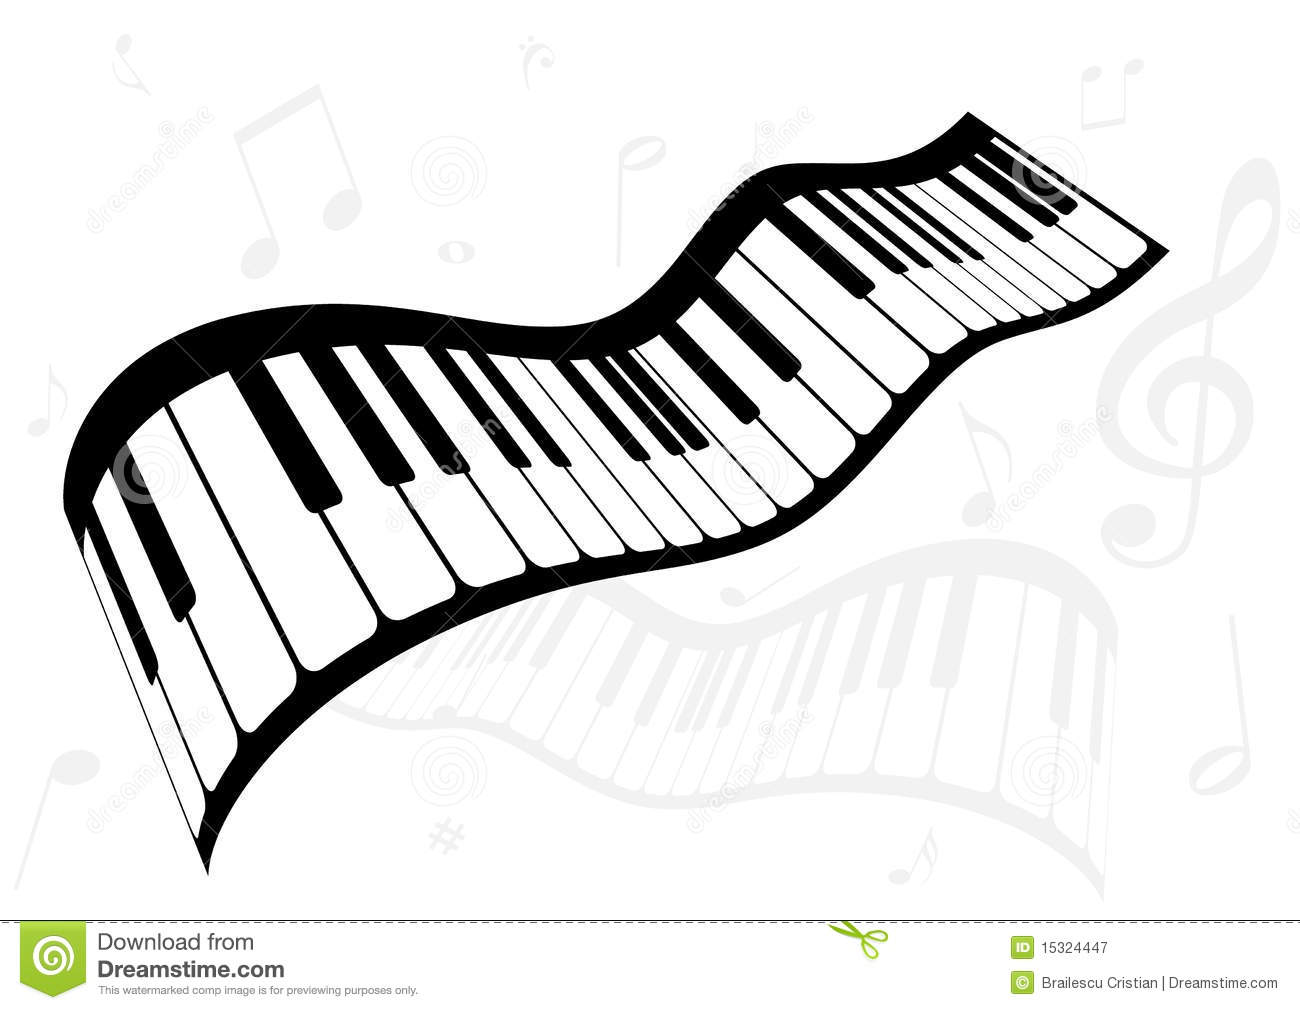 Gut bekannt Illustration Of A Piano And Music Notes Stock Vector - Image: 15324447 LE98